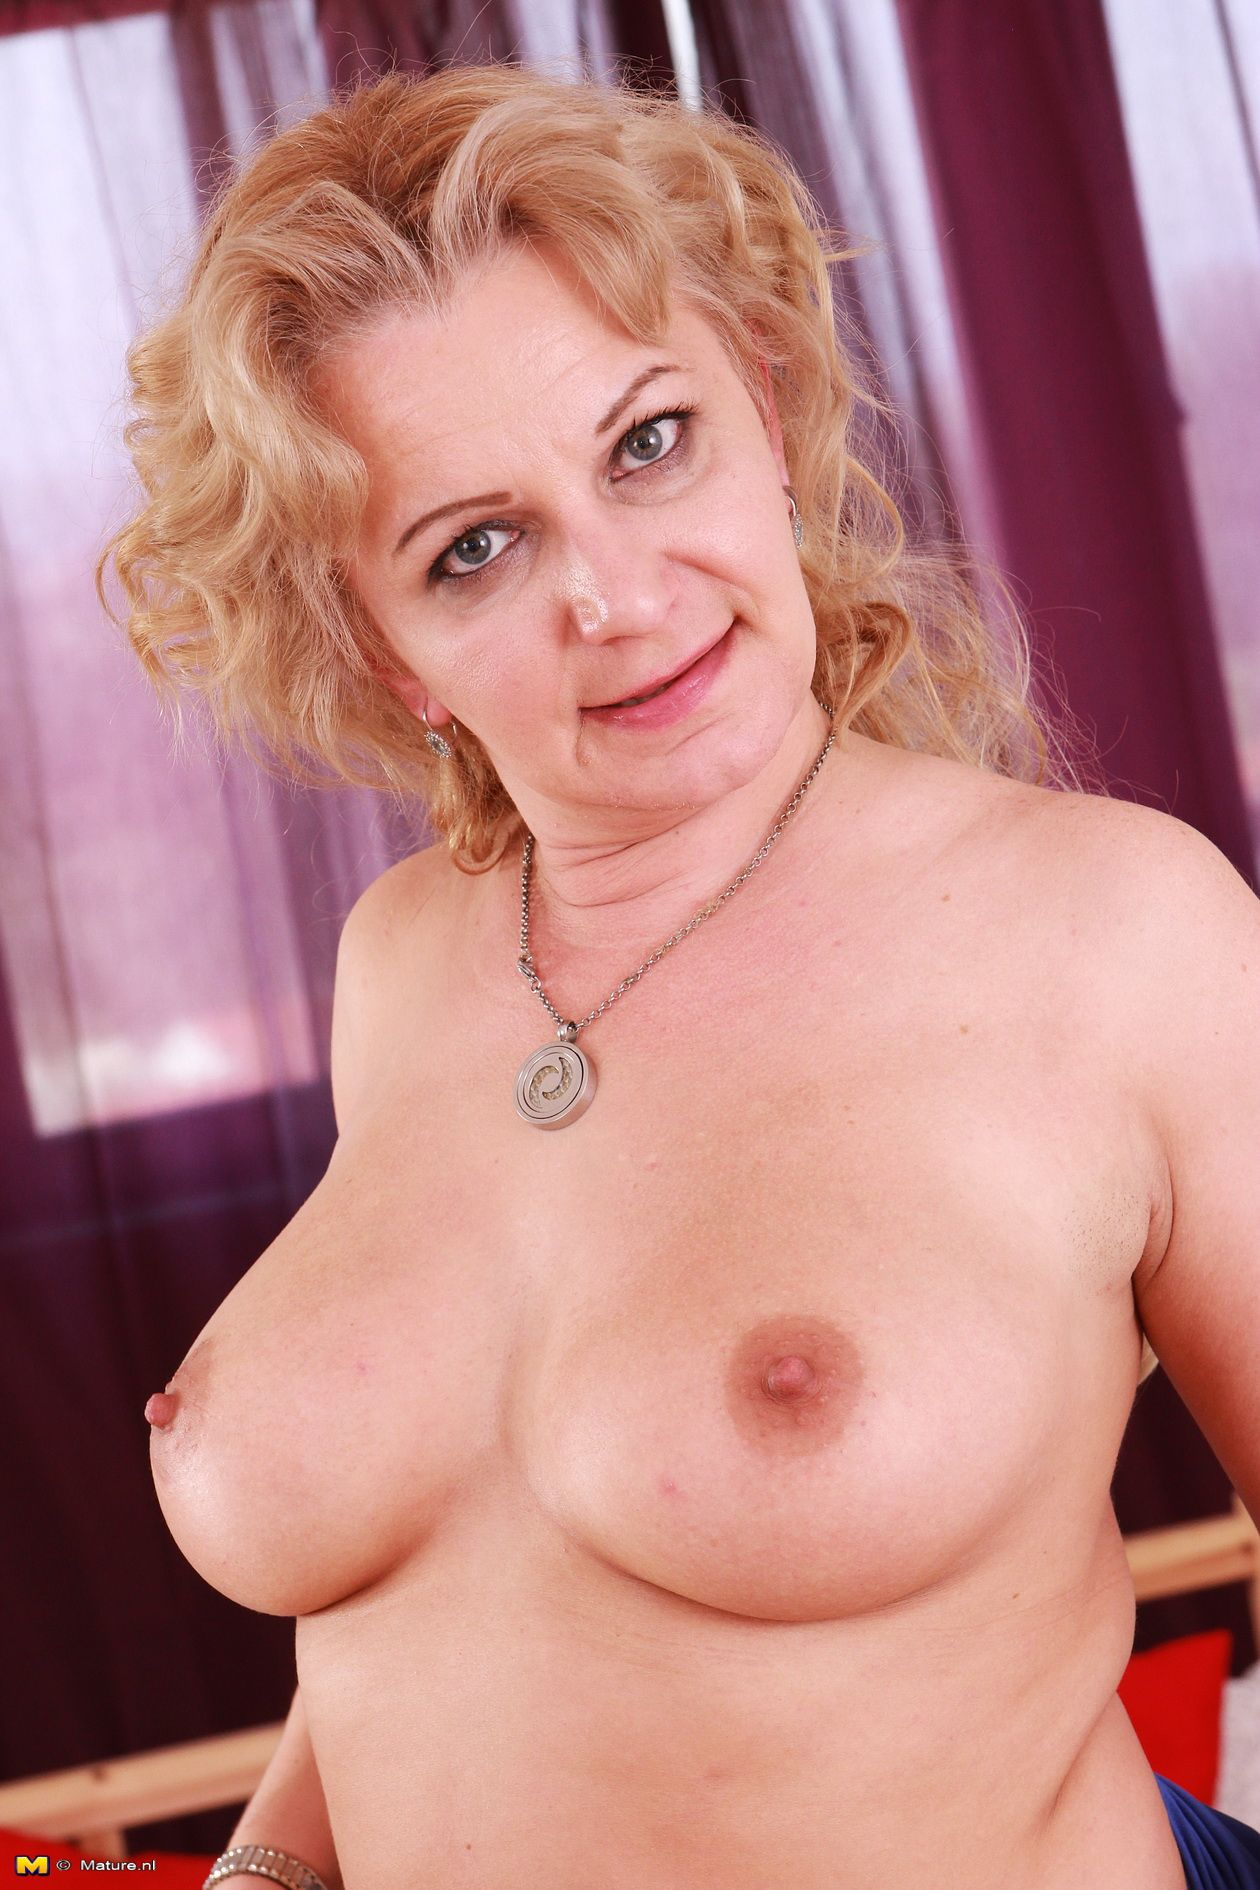 Atk hairy mature pussy